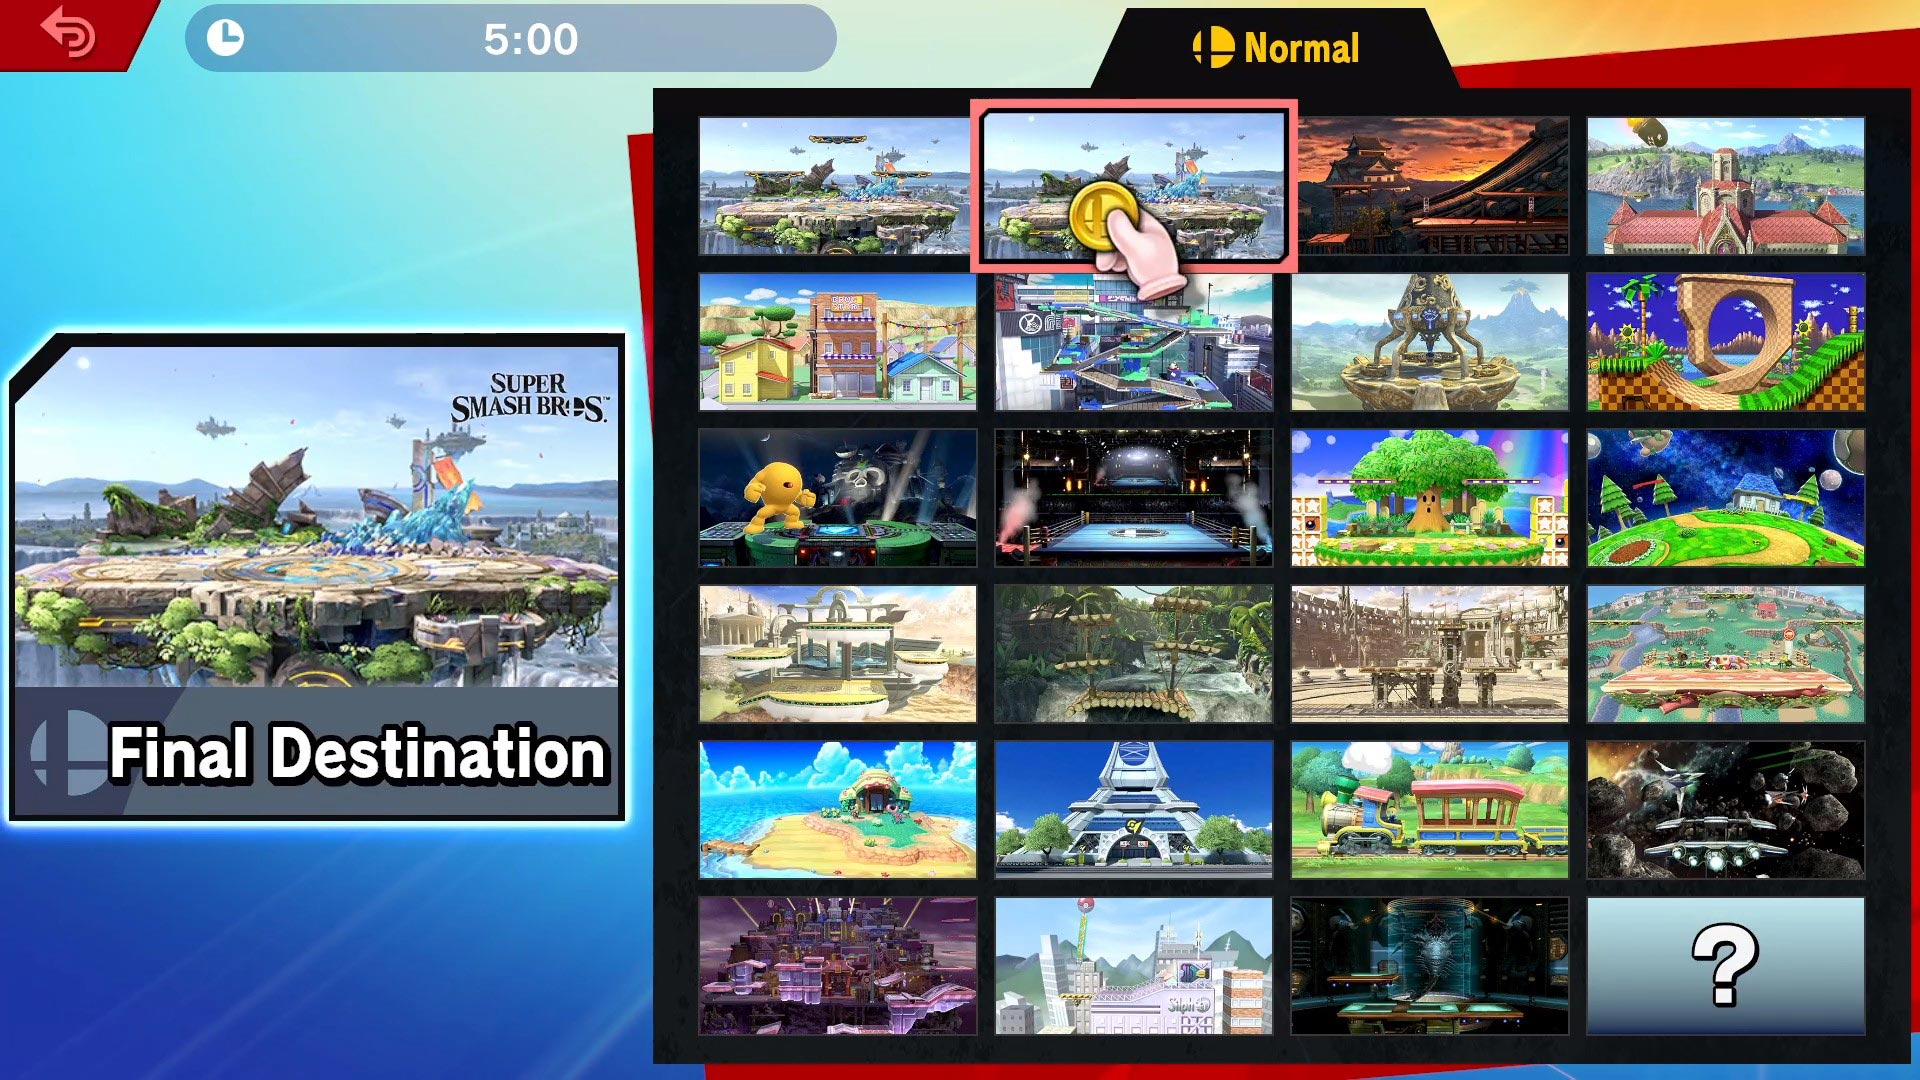 Smash Ultimate Screens 2 out of 3 image gallery